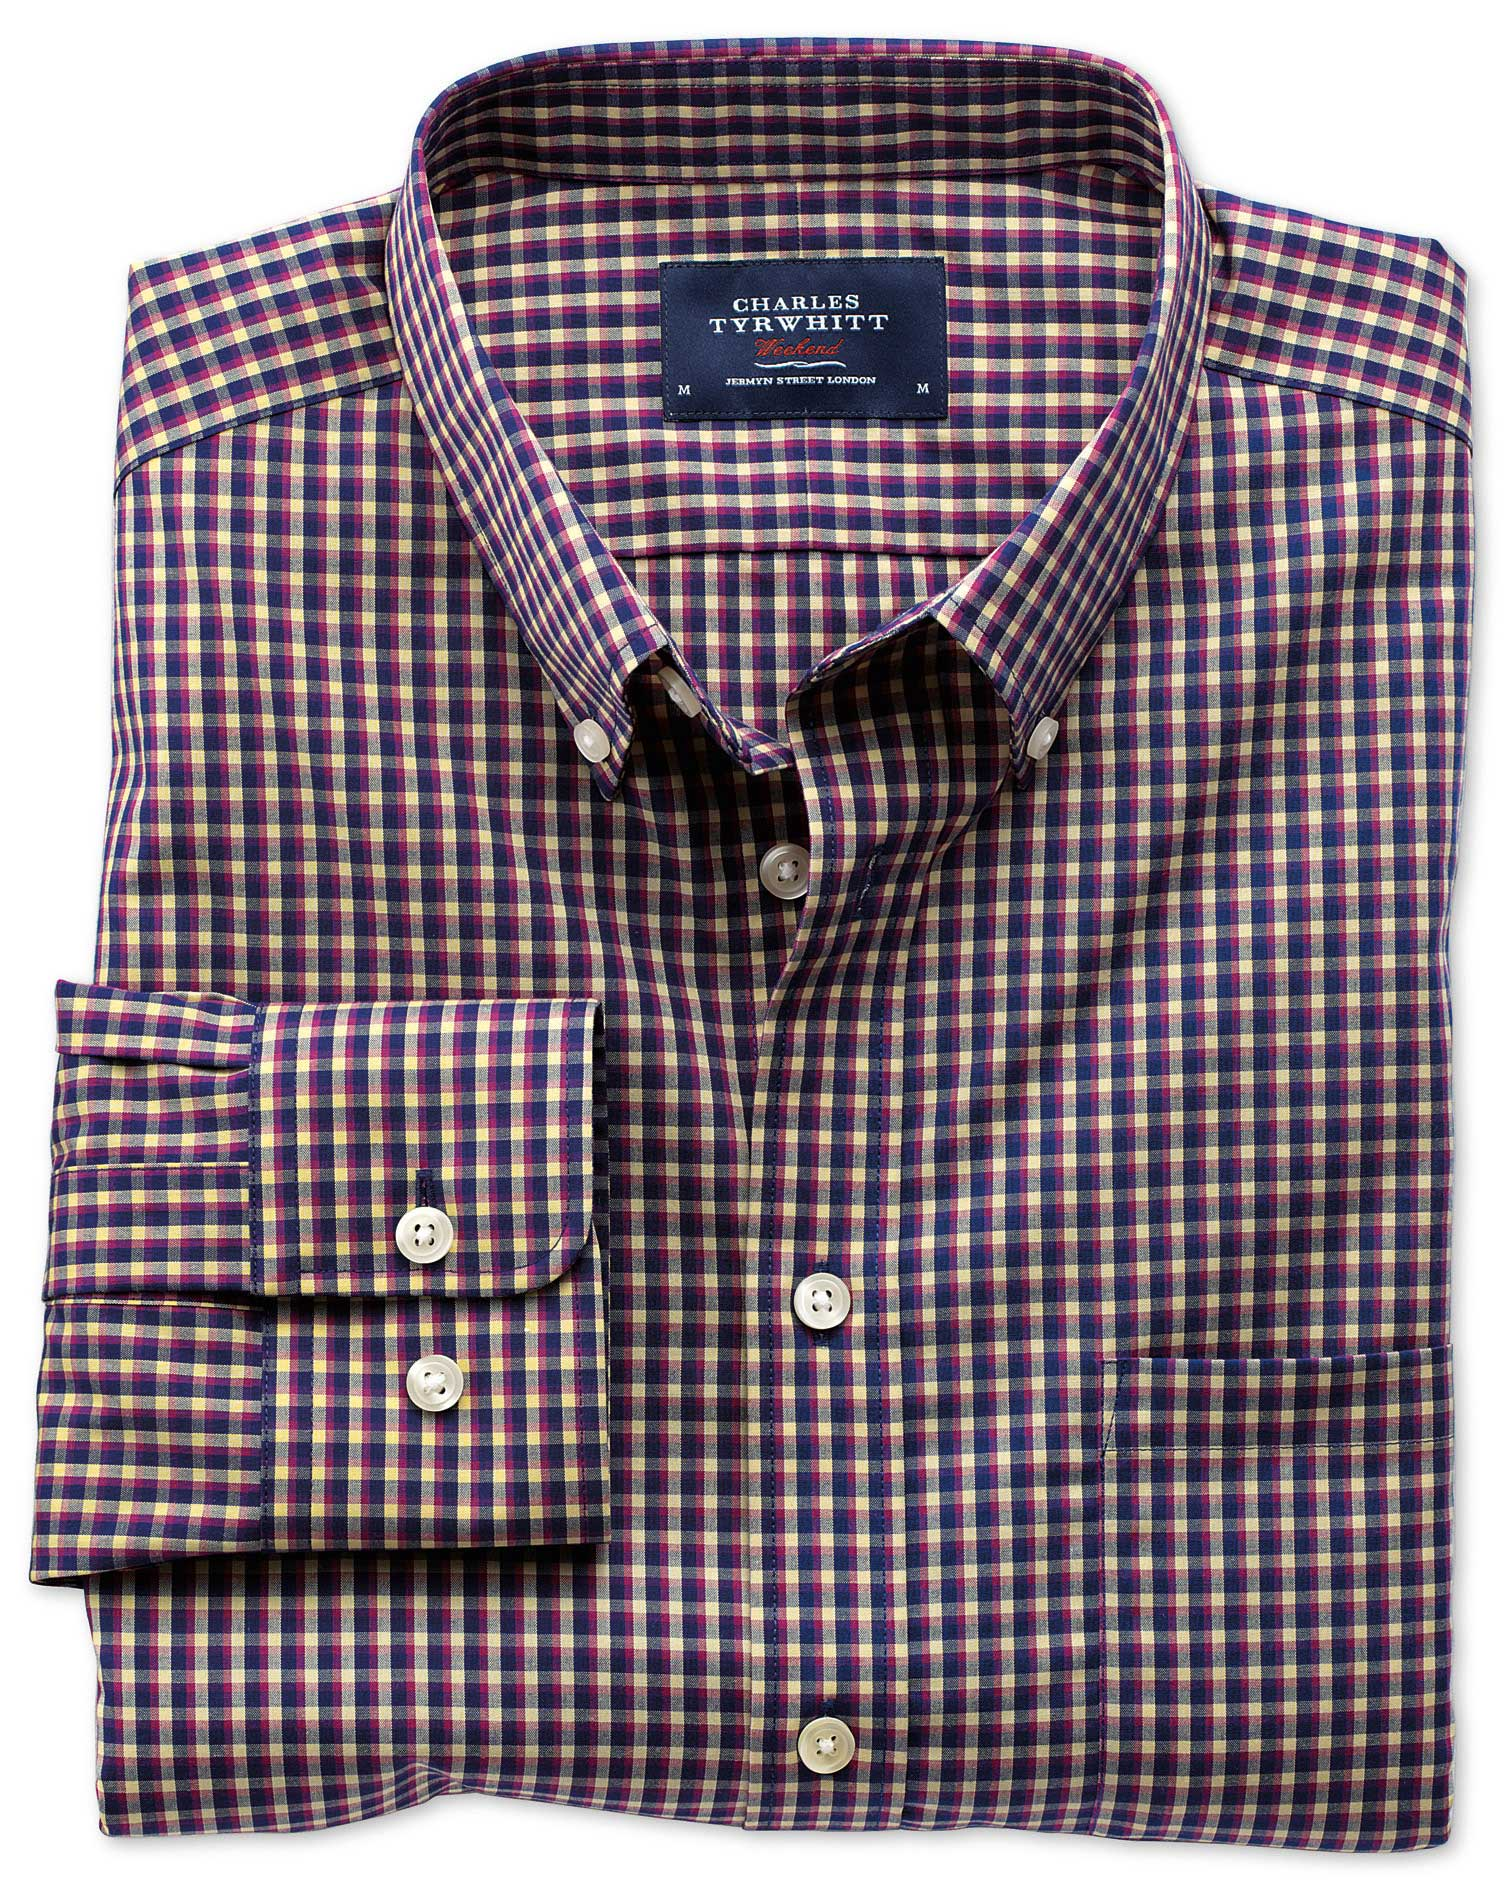 Extra Slim Fit Non-Iron Poplin Navy and Berry Check Cotton Shirt Single Cuff Size Small by Charles T